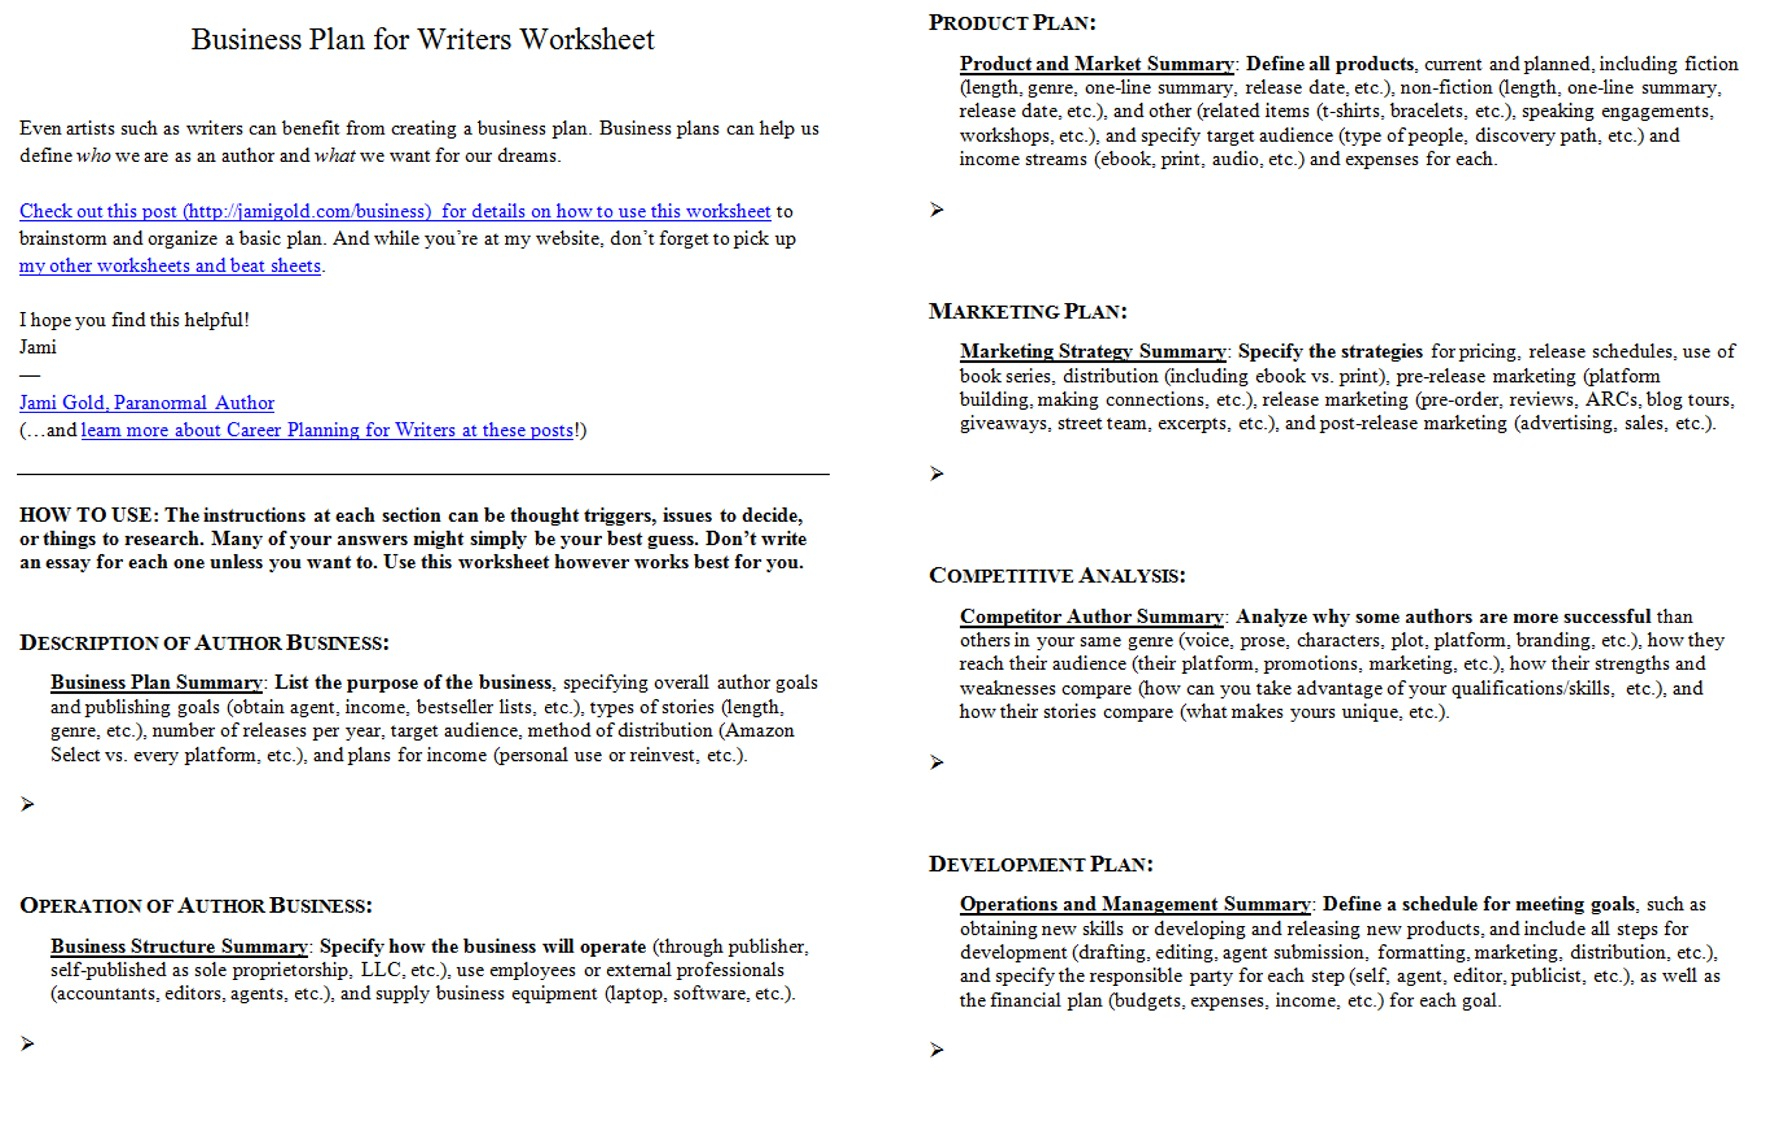 Aldiablosus  Personable Worksheets For Writers  Jami Gold Paranormal Author With Magnificent Screen Shot Of Both Pages Of The Business Plan For Writers Worksheet With Alluring Pov Worksheet Also Periodic Table Printable Worksheets In Addition Worksheet On Multiplying Decimals And Community Worksheet As Well As Tracer Worksheets Additionally Trig Ratio Worksheets From Jamigoldcom With Aldiablosus  Magnificent Worksheets For Writers  Jami Gold Paranormal Author With Alluring Screen Shot Of Both Pages Of The Business Plan For Writers Worksheet And Personable Pov Worksheet Also Periodic Table Printable Worksheets In Addition Worksheet On Multiplying Decimals From Jamigoldcom